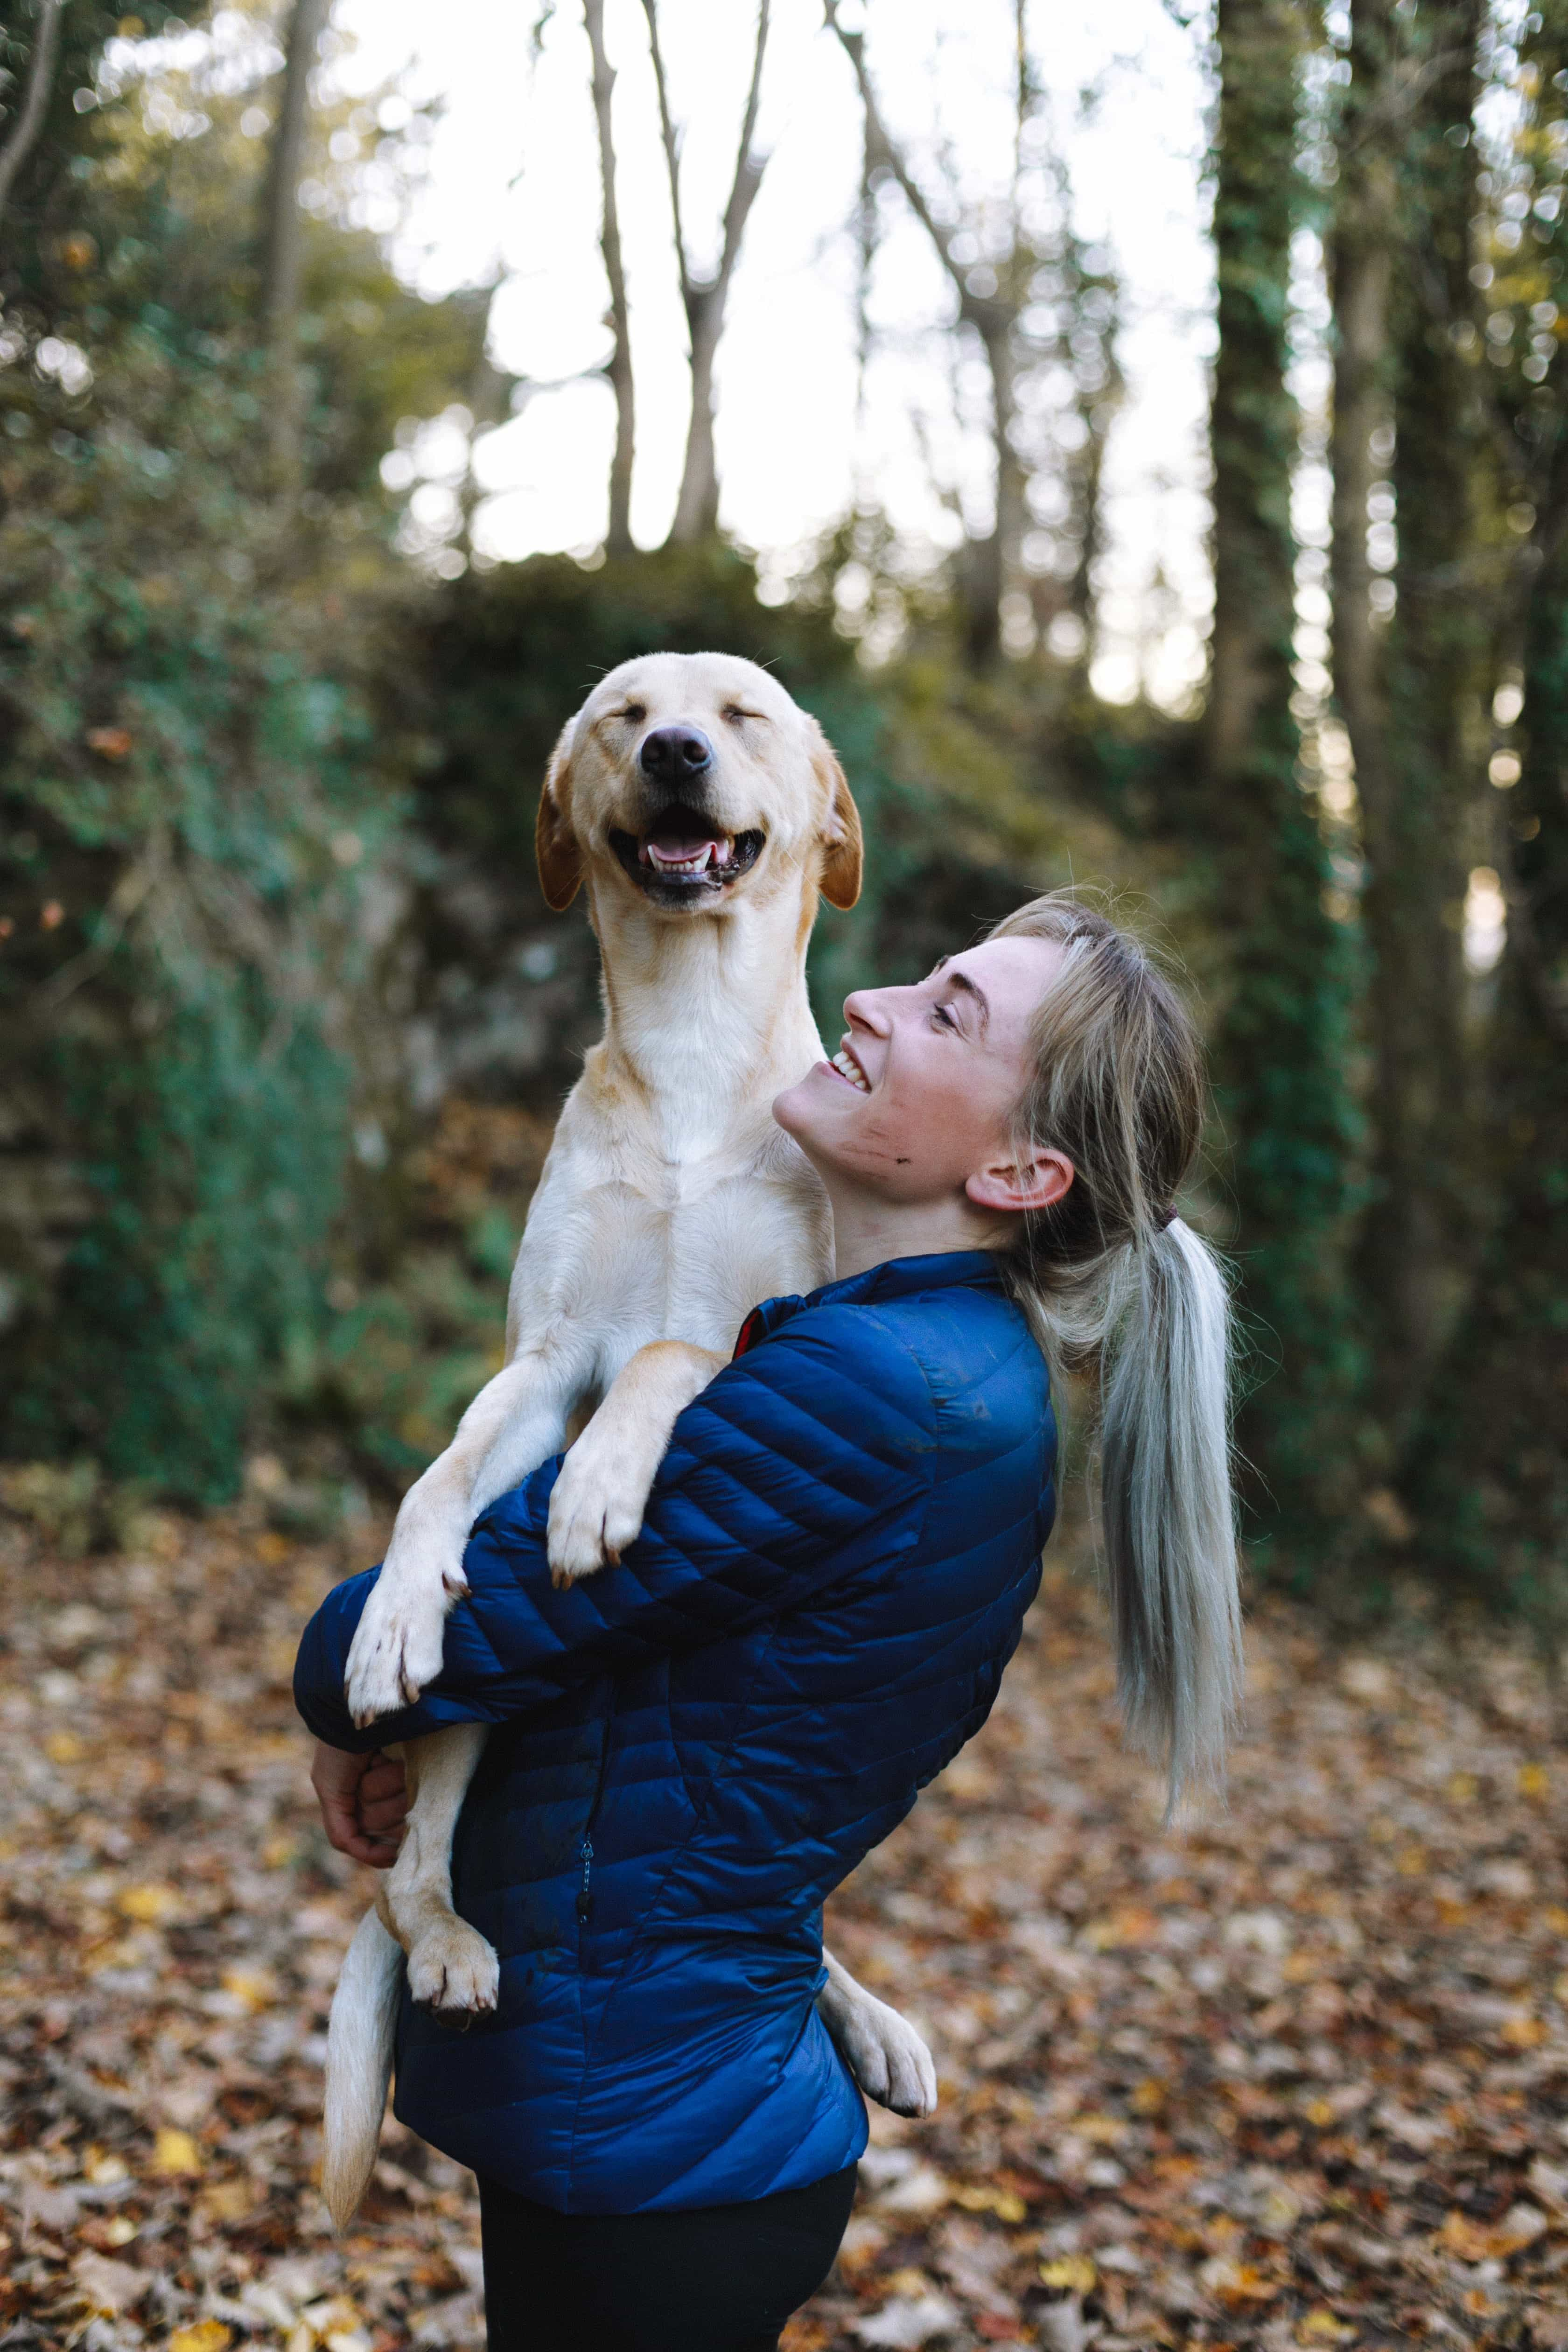 Travel blogger Sarah Kim of Lust 'Till Dawn shares the best way to find trustworthy dog sitters that stay at your home while you travel. |  Here is a photo of a dog sitter and your puppy.